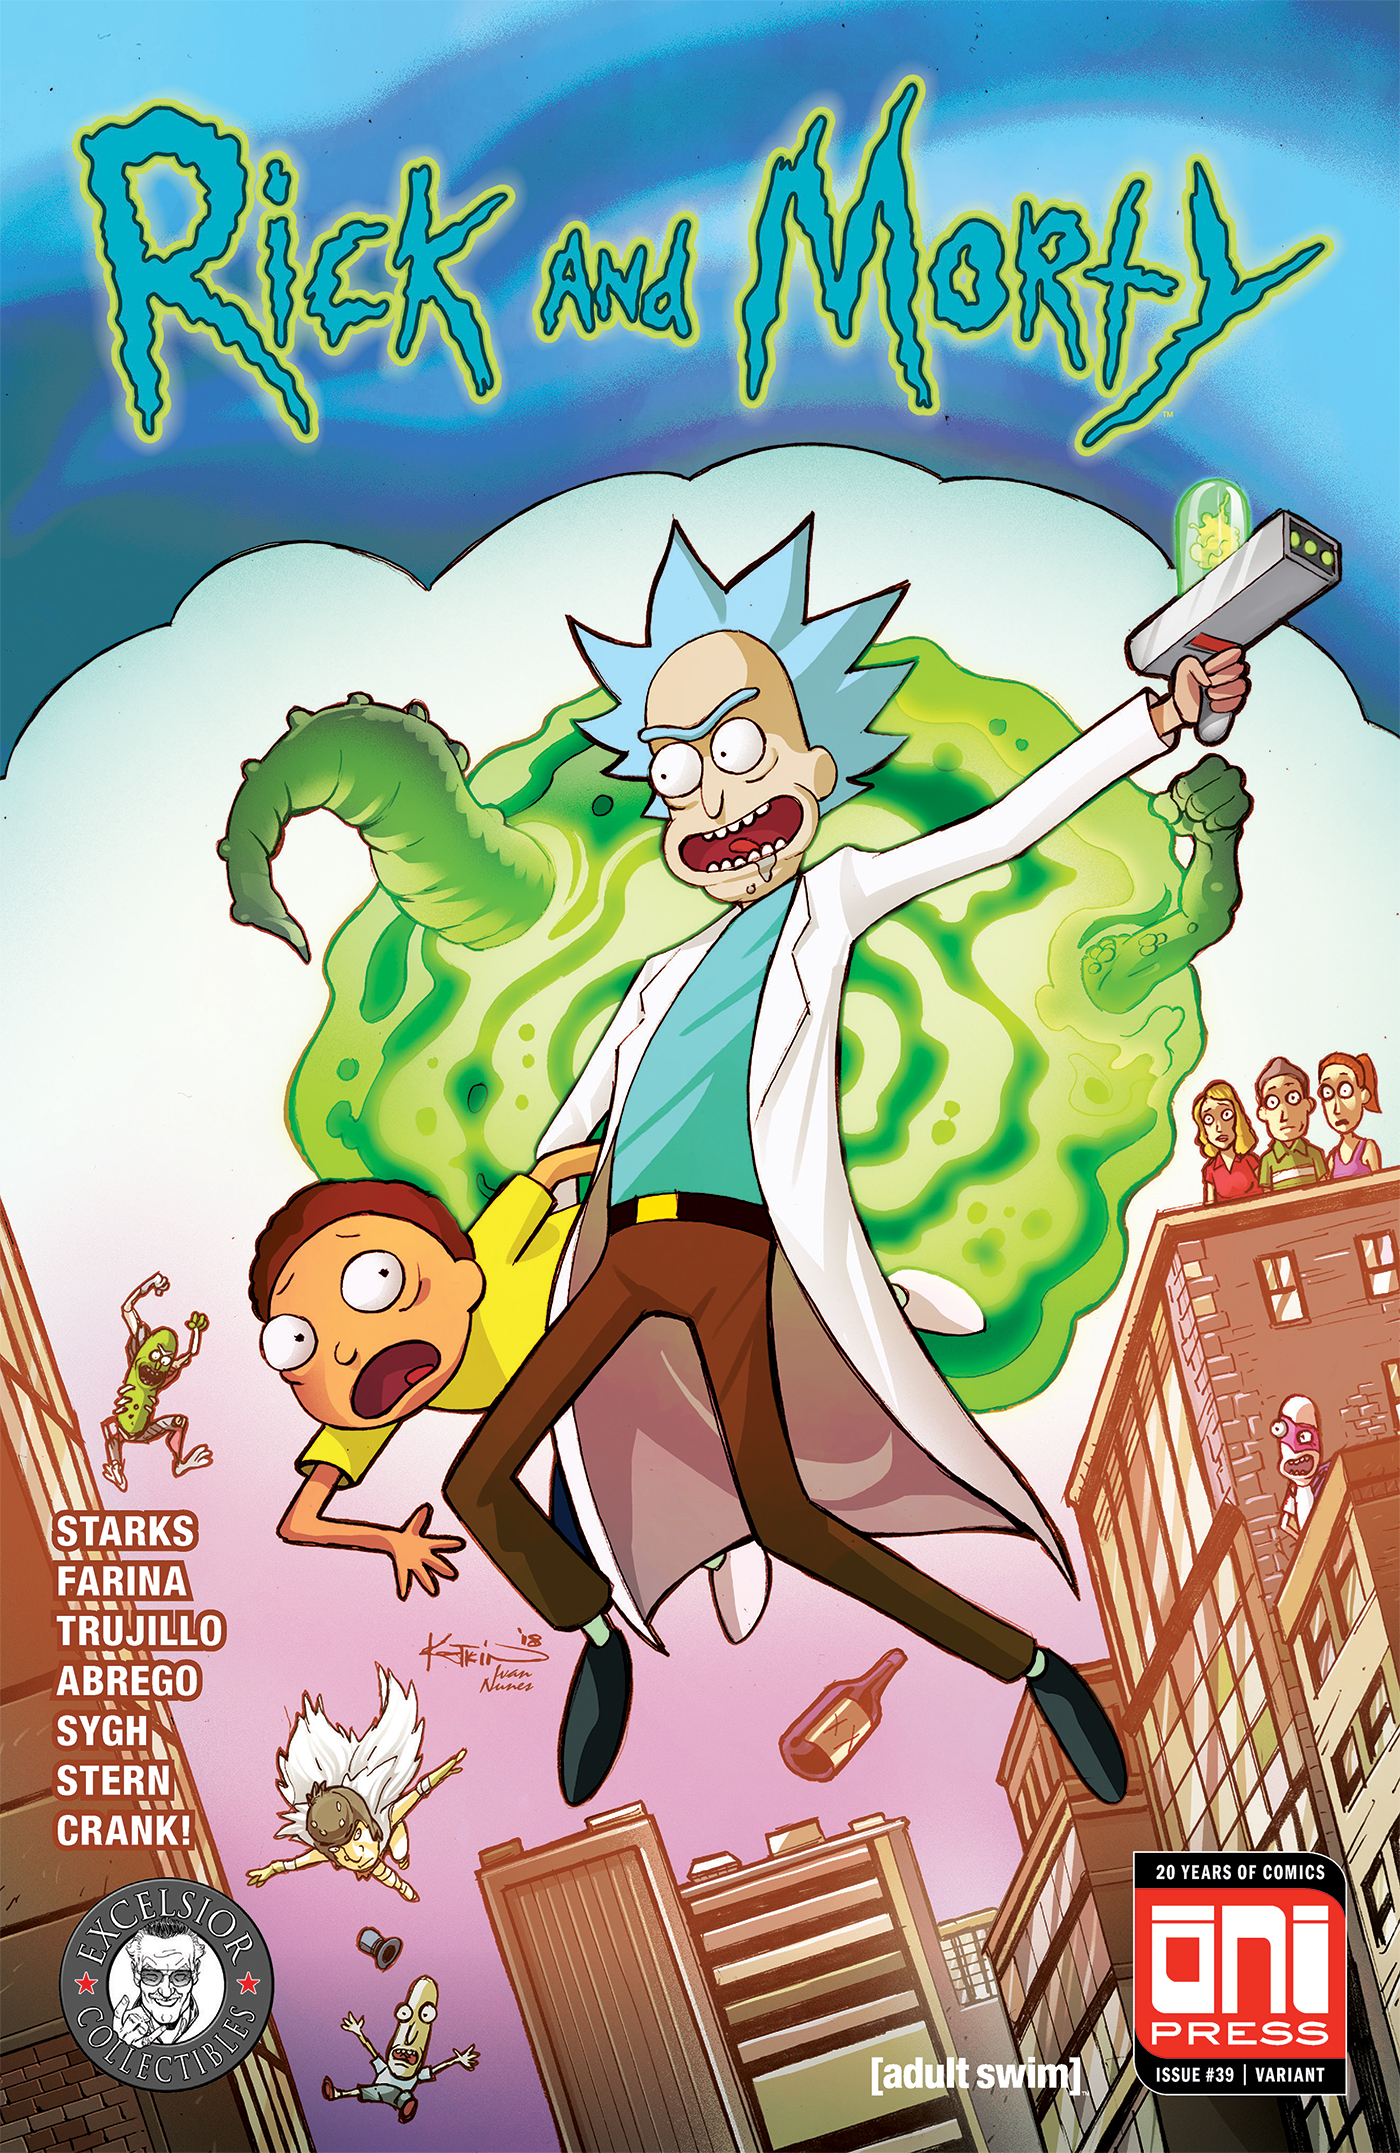 Rick and Morty Issue 39